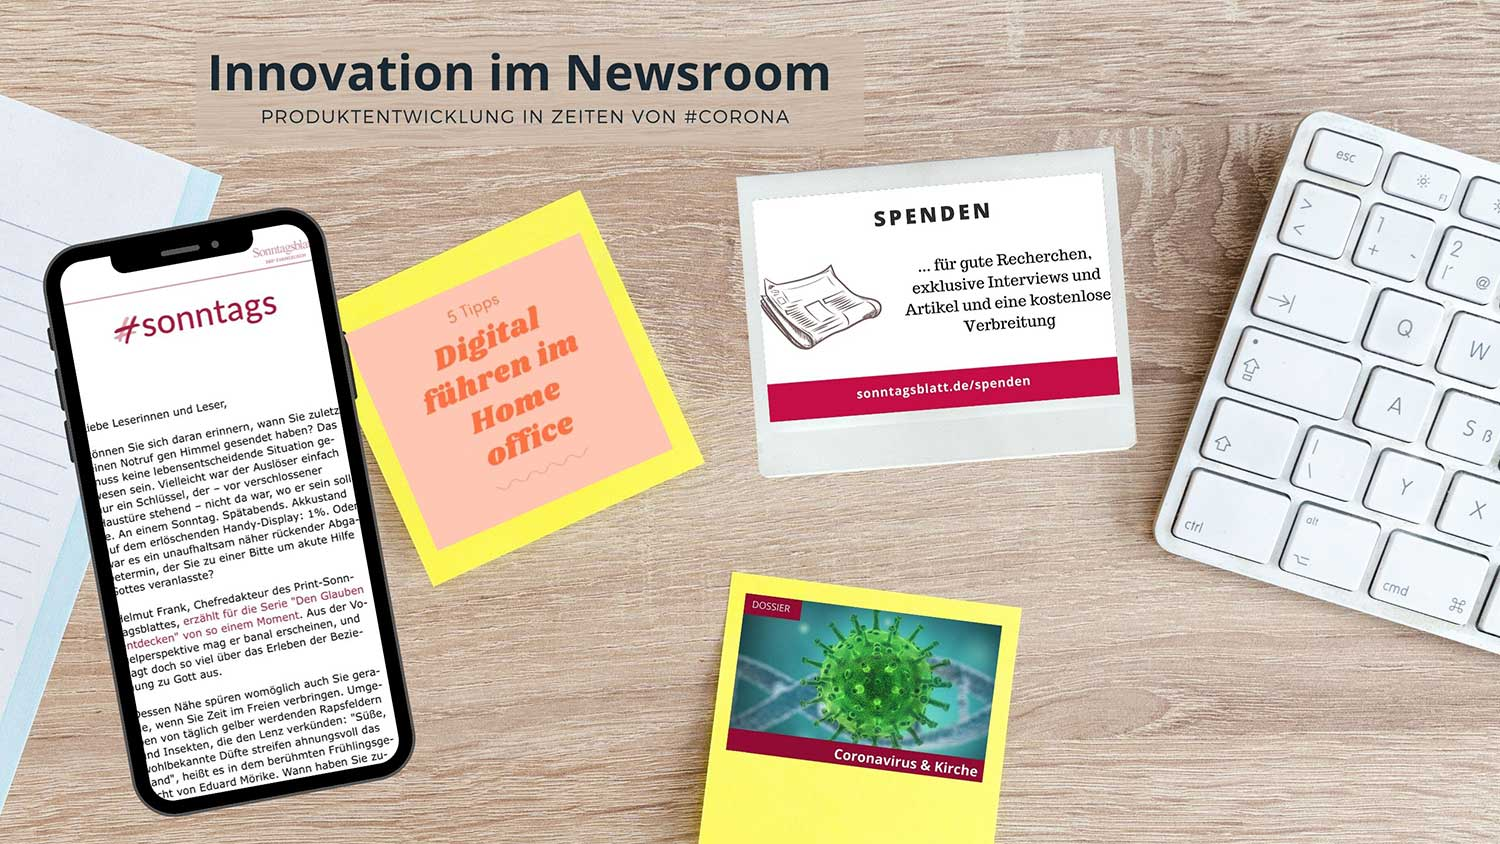 Innovation im Newsroom